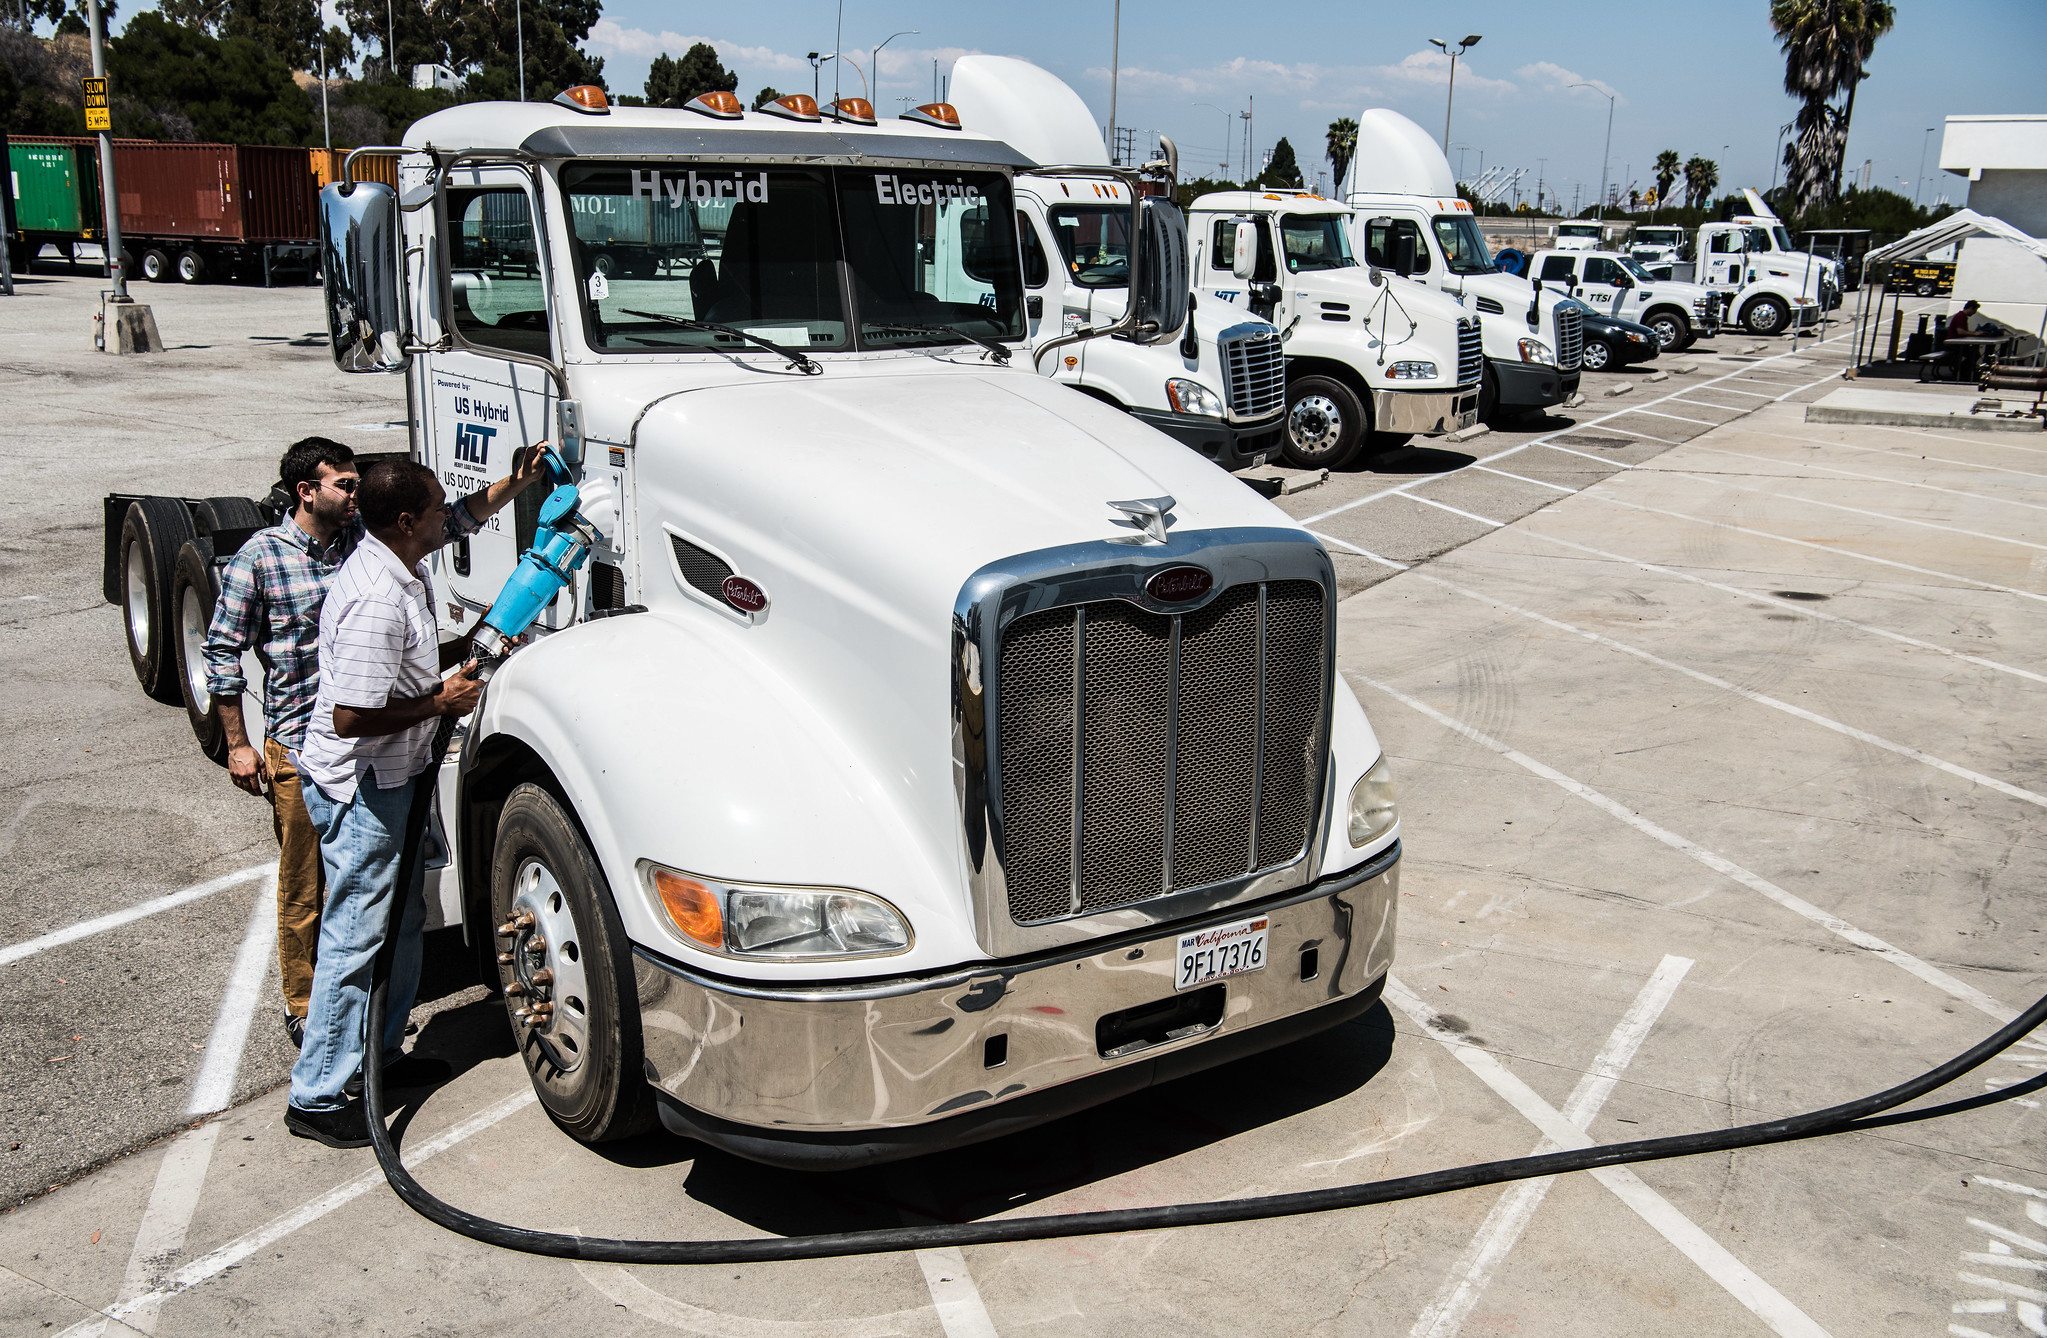 July 31, 2017 -  A  US Hybrid, electric hybrid heavy duty truck, used to move freight at the Long Beach Port in California, is plugged in to charge at TTSI.  (Photo by DENNIS SCHROEDER / NREL)